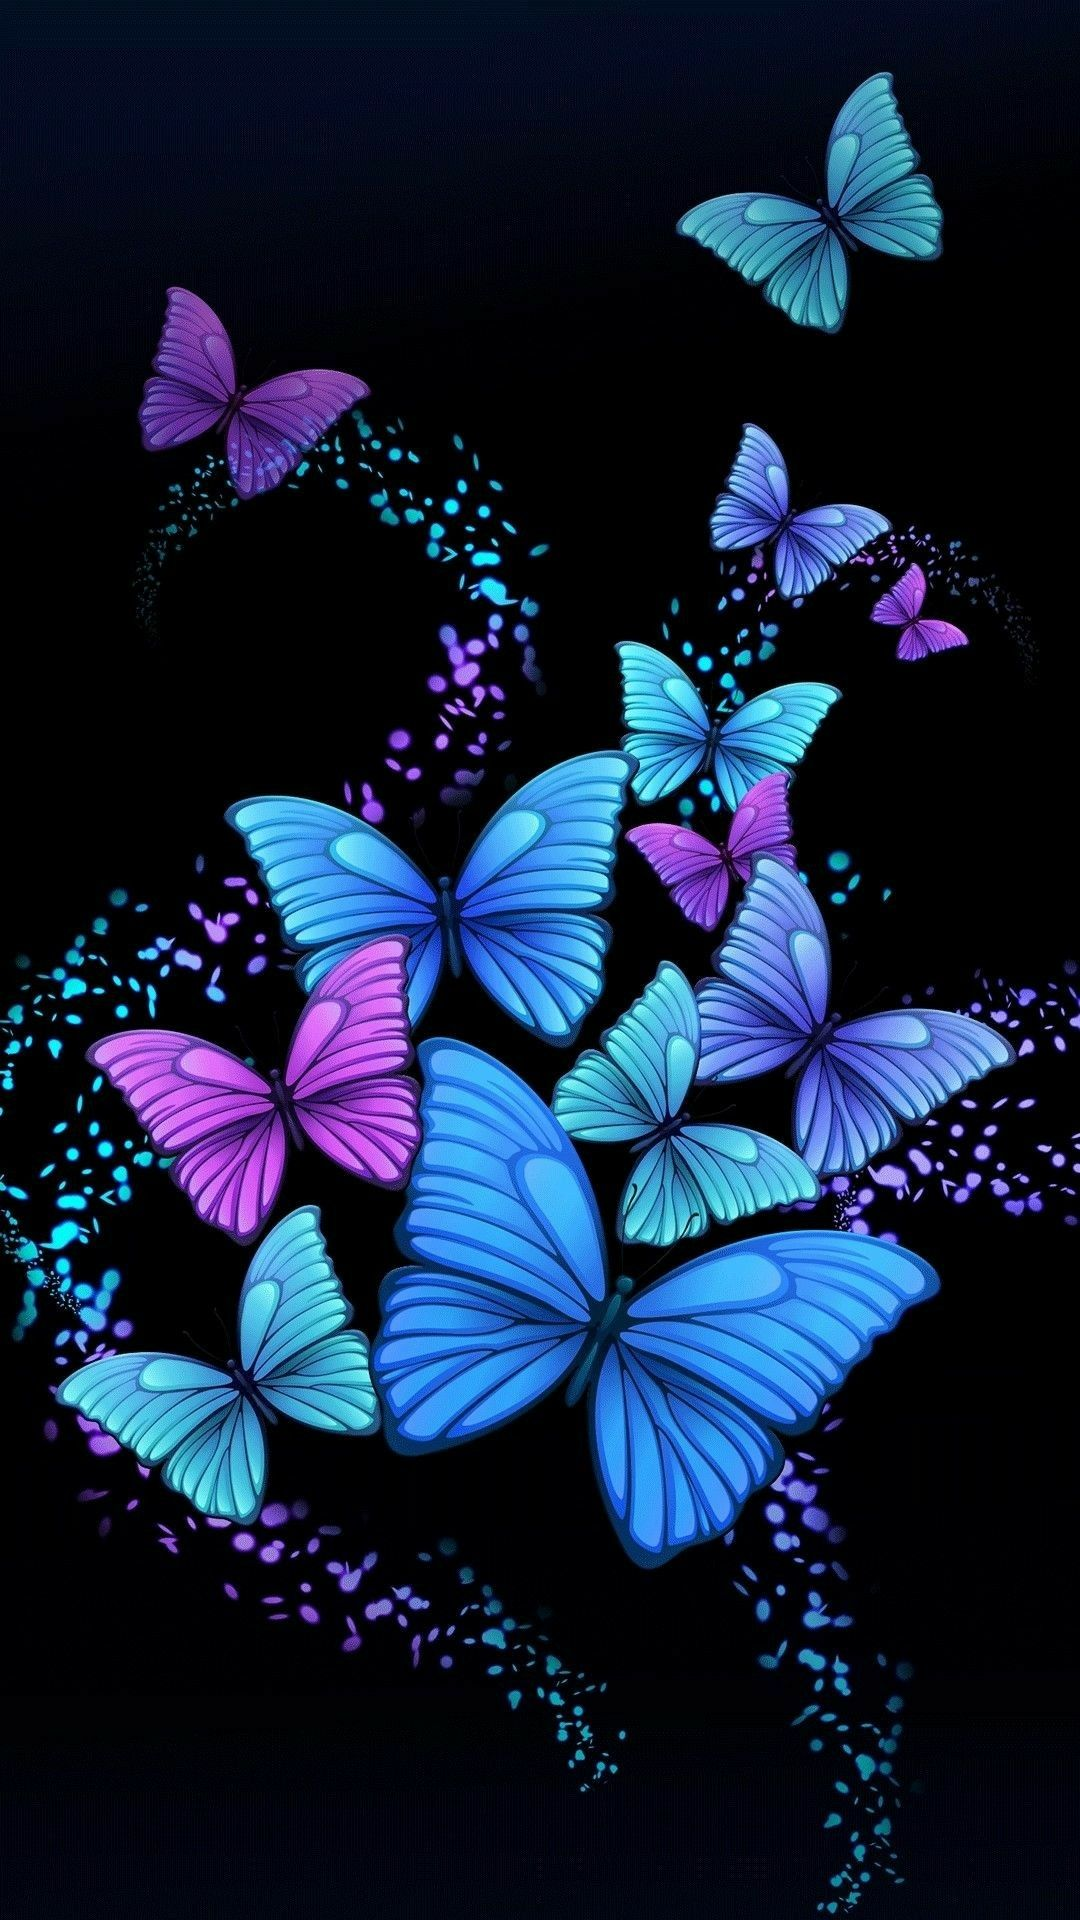 Butterflies (With images) Butterfly wallpaper, Butterfly